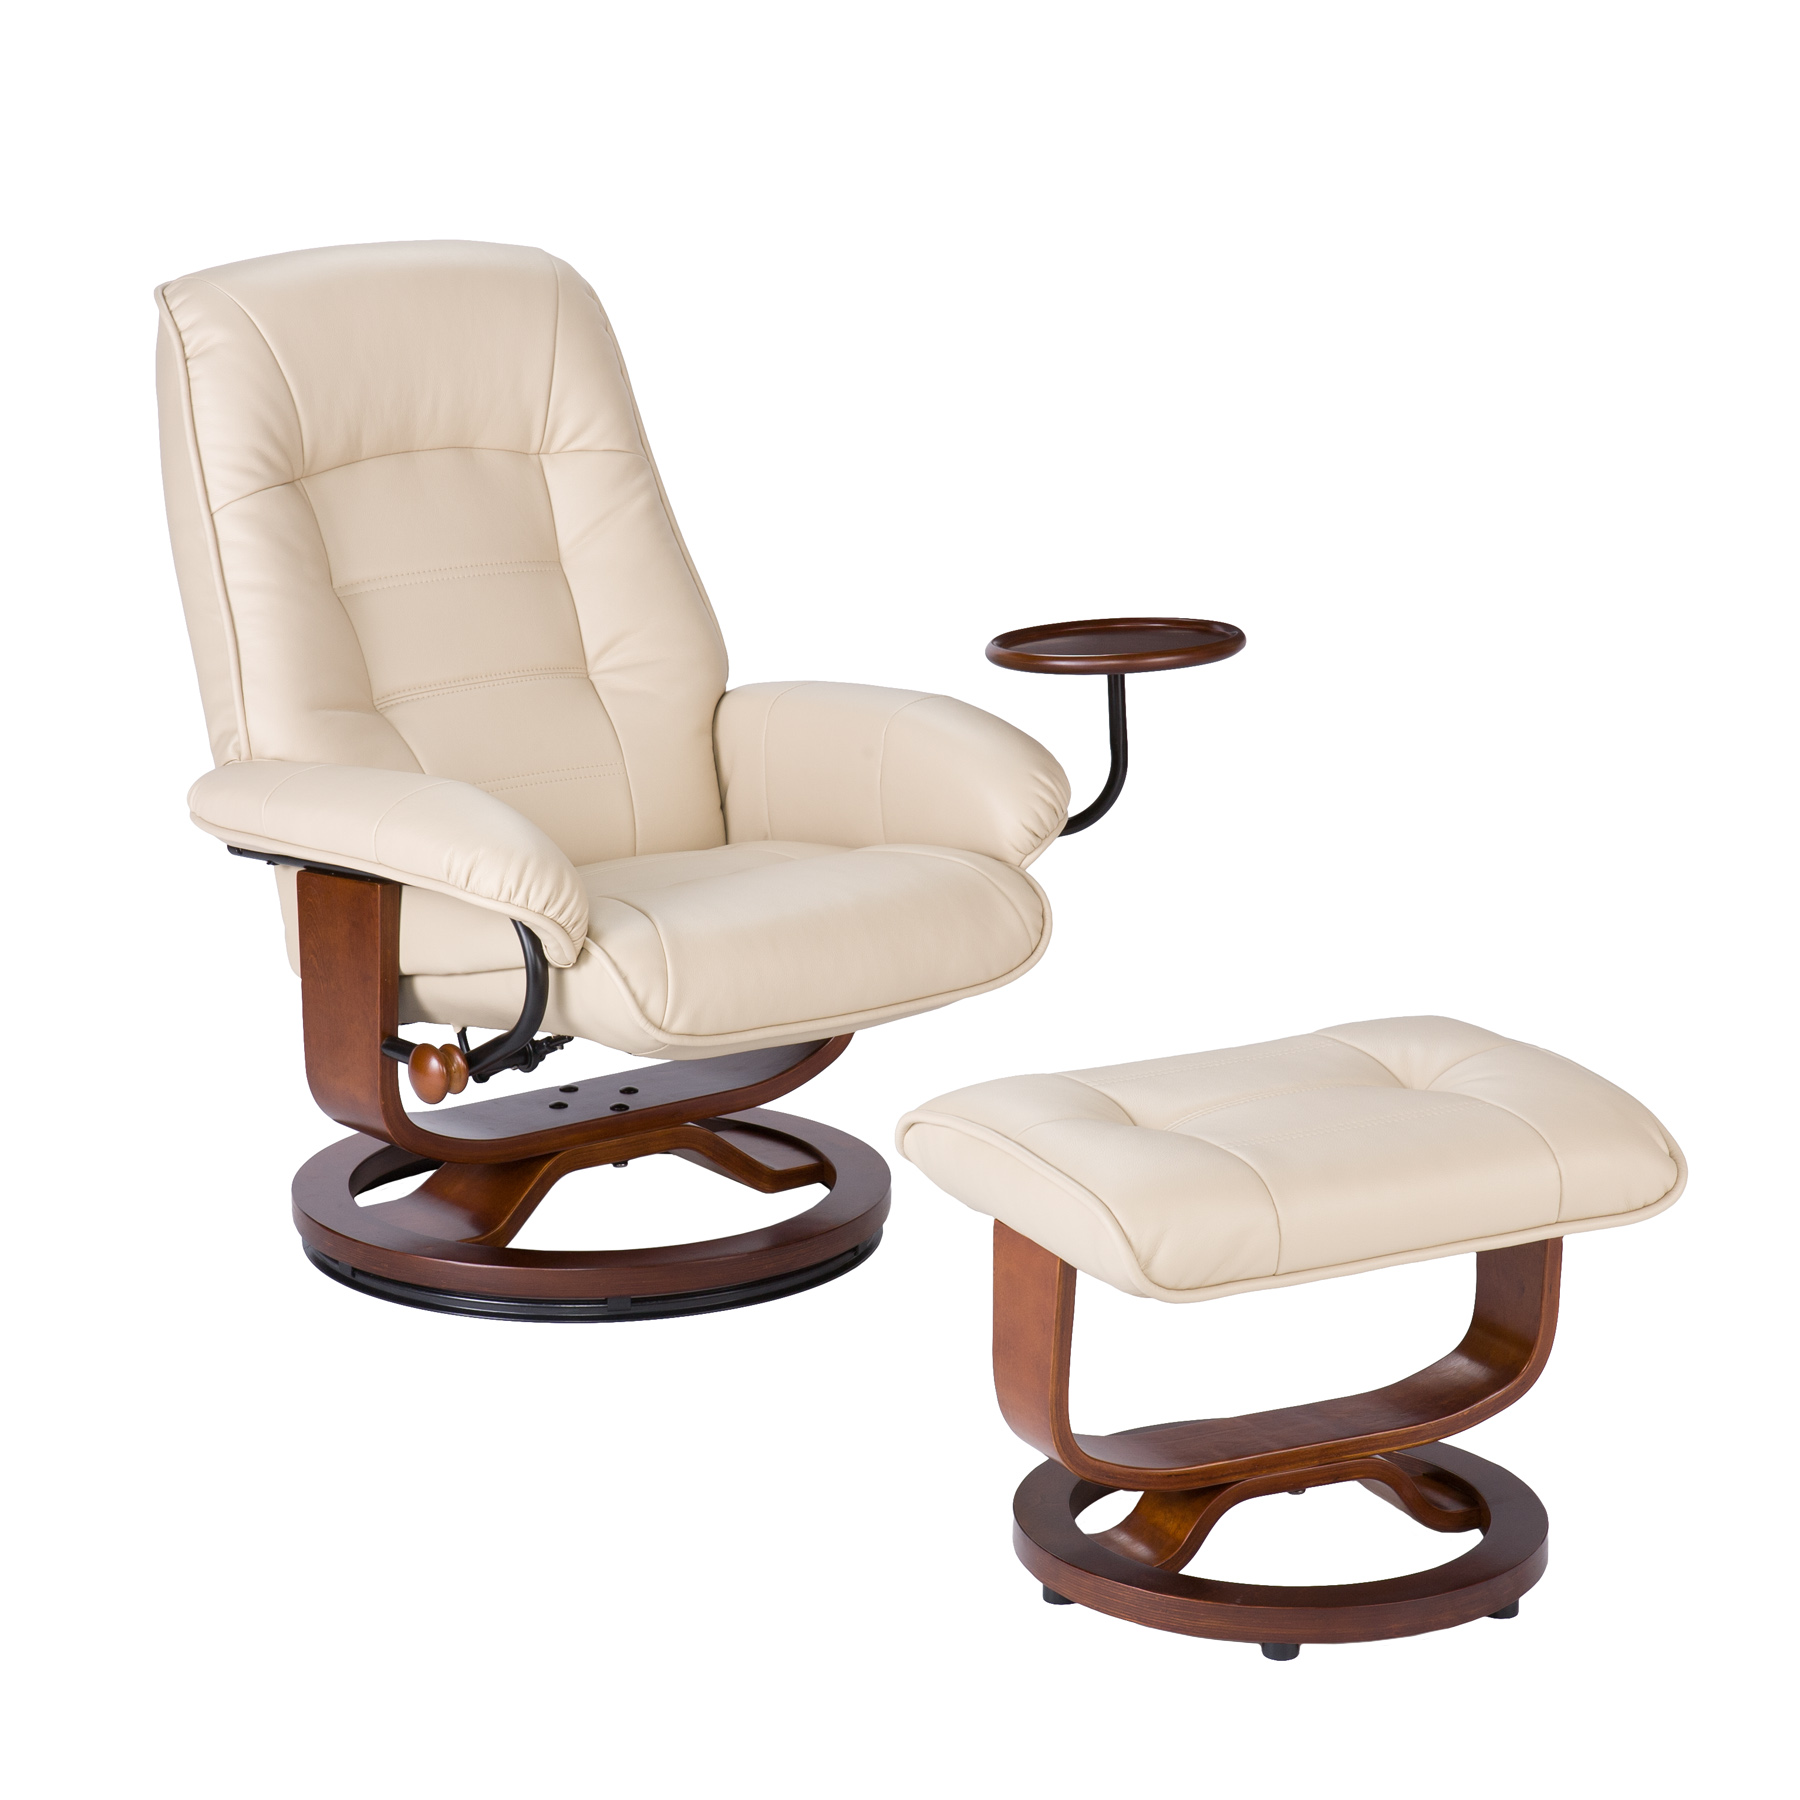 Southern Enterprises Up1303rc Leather Recliner And Ottoman